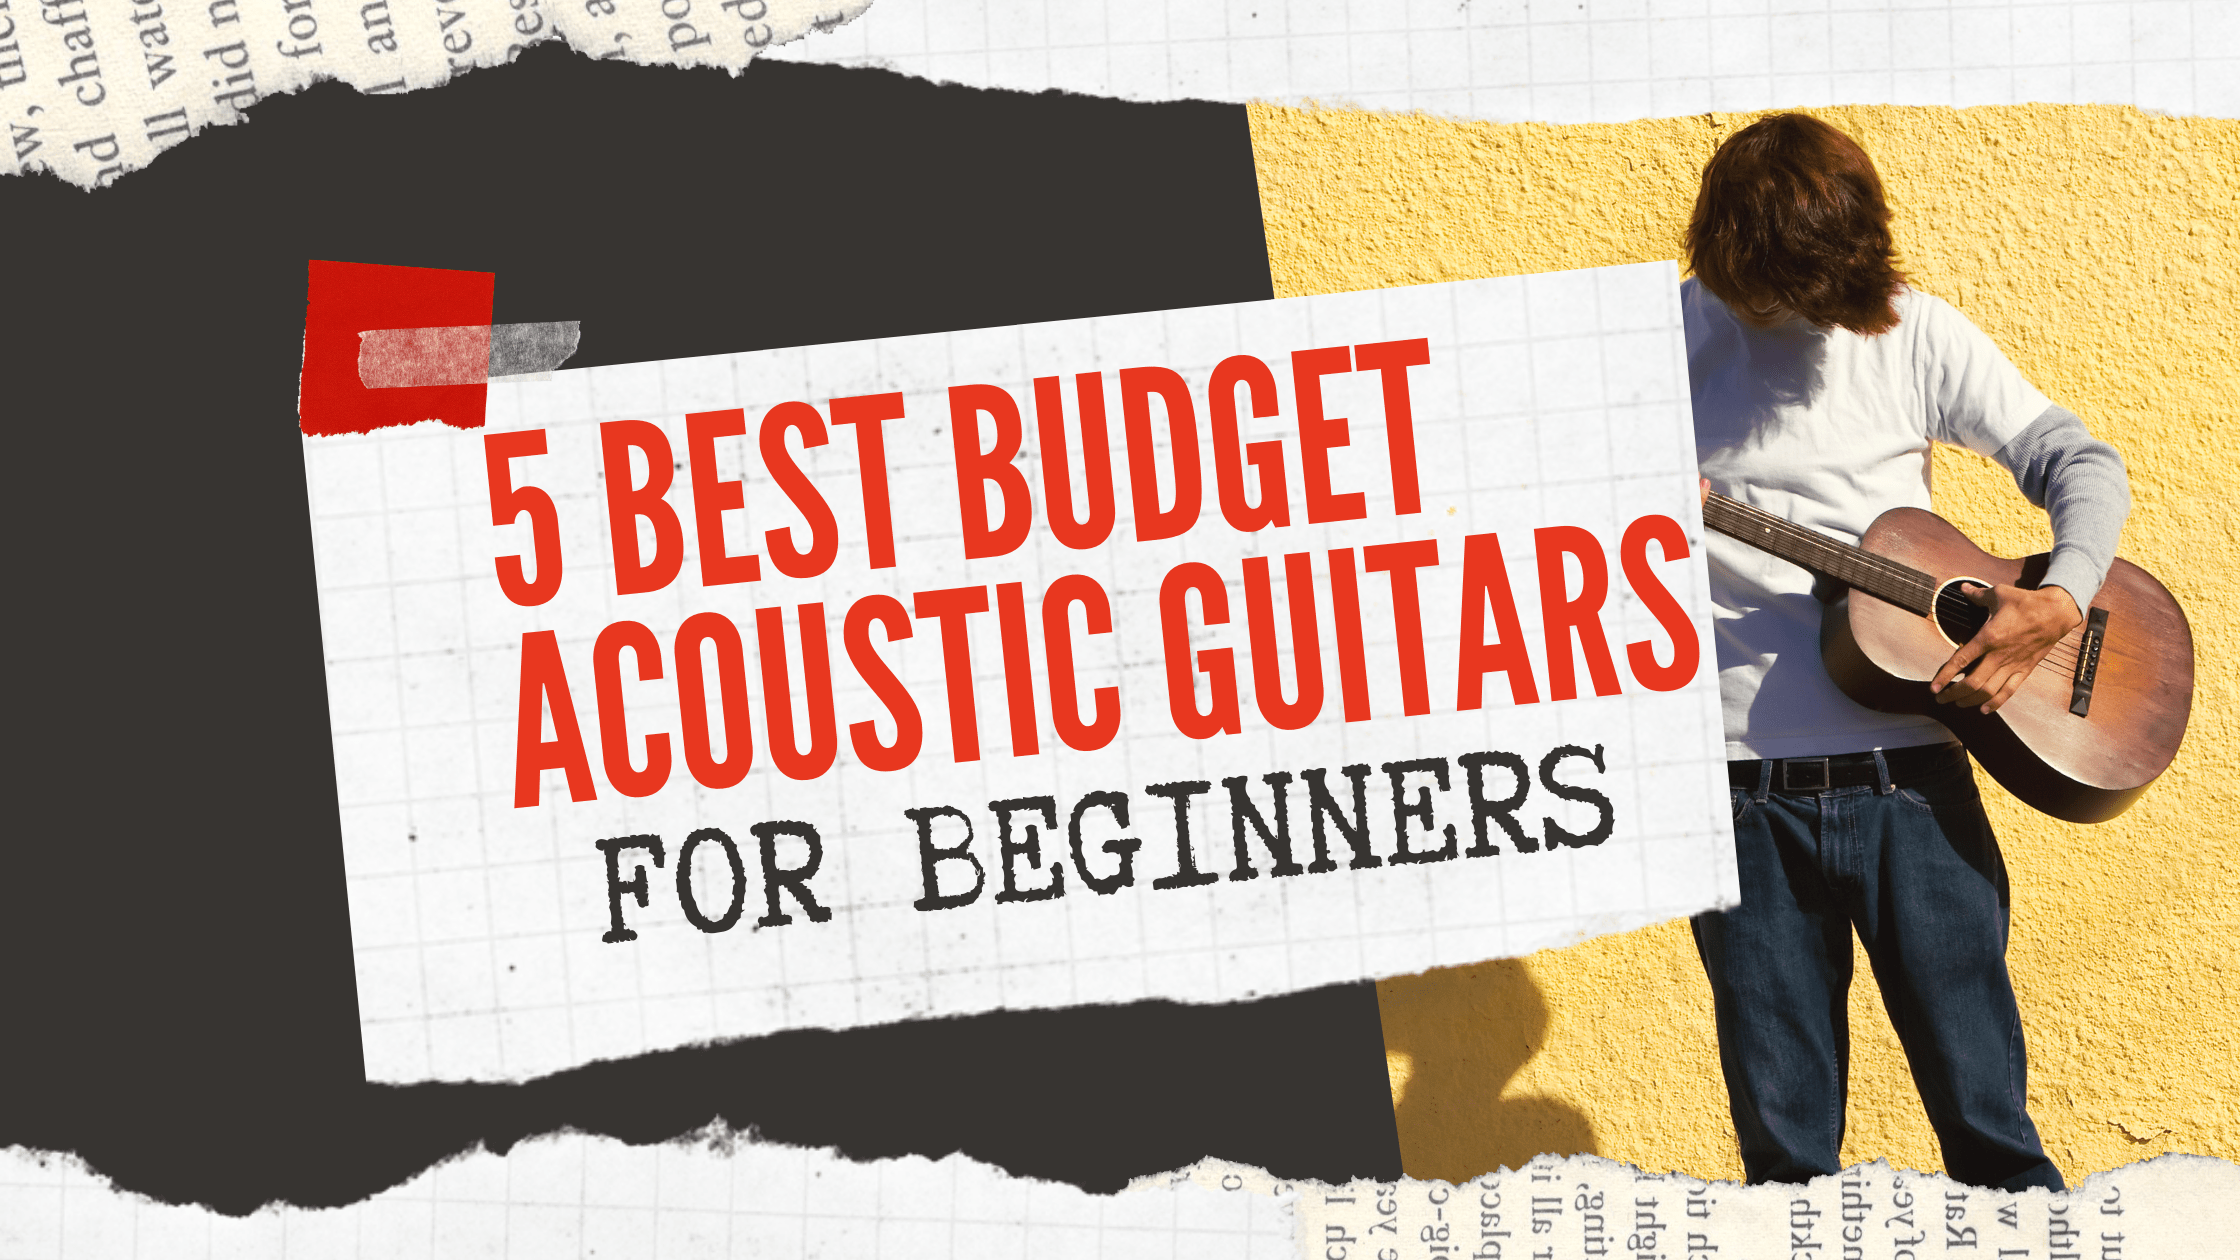 5 Best Acoustic Guitars in India For Beginners in 2021